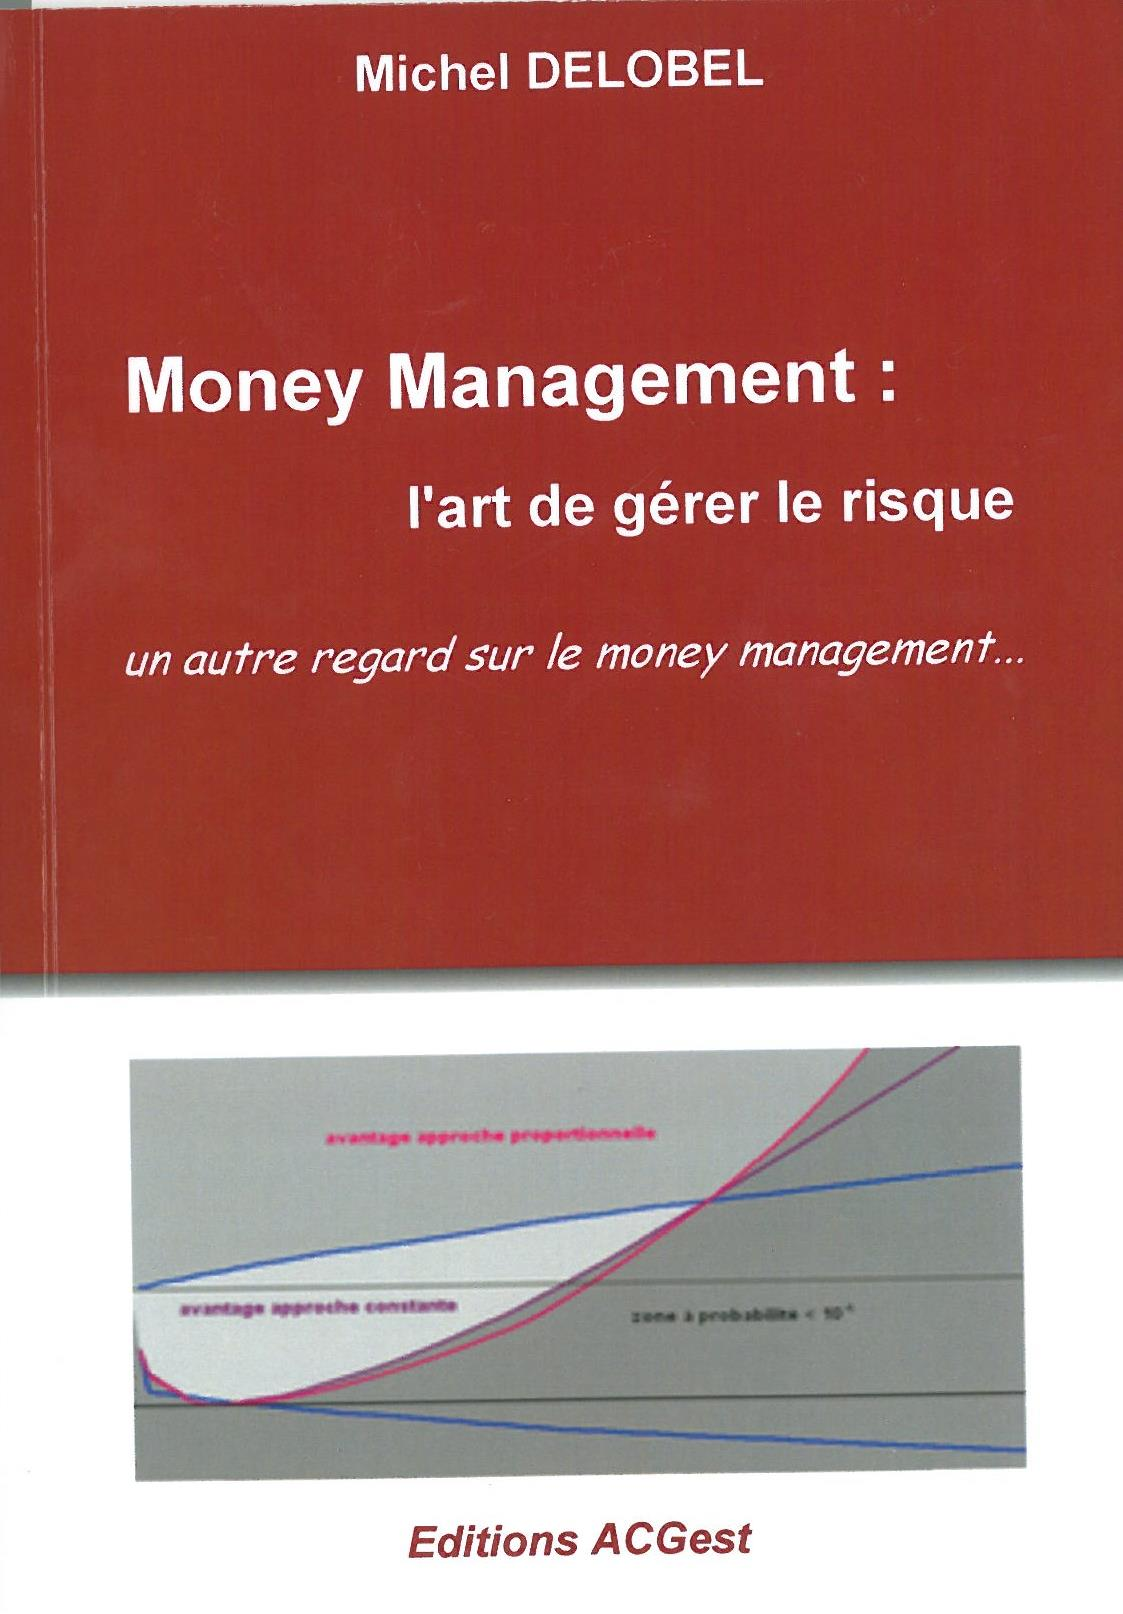 LE MONEY MANAGEMENT